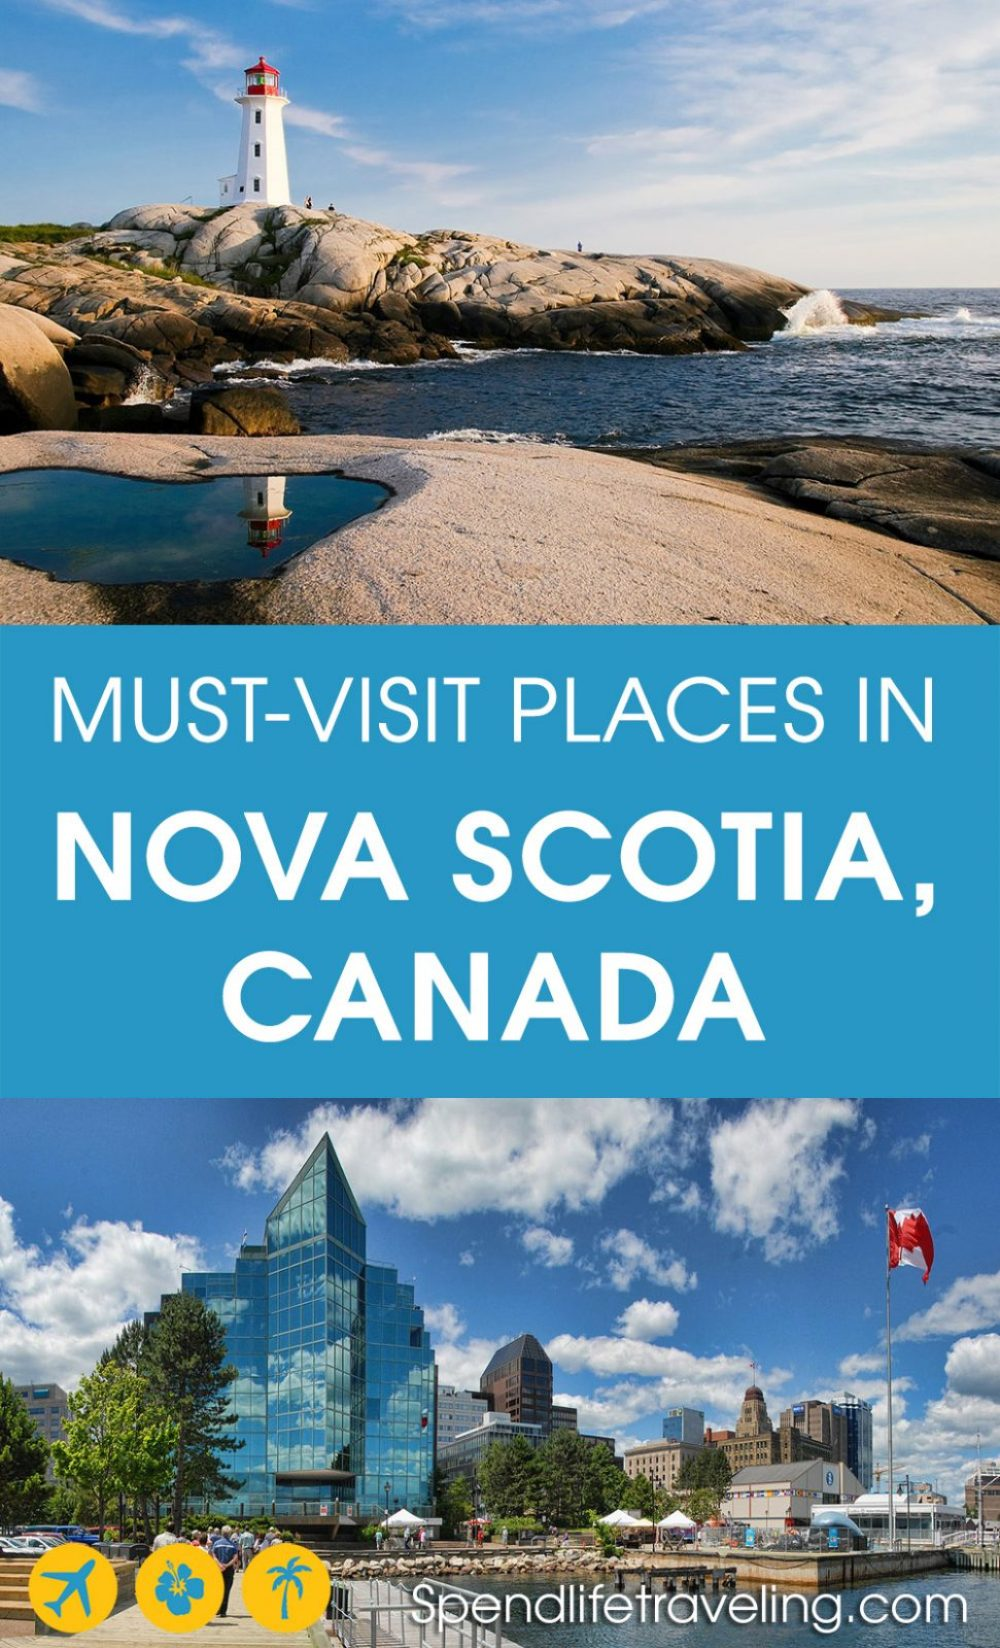 Nova Scotia is a beautiful Canadian province with a stunning coastline, cute fishing villages and incredible nature. Check out what not to miss when visiting Nova Scotia. #NovaScotia #Canada #traveltips #visitCanada #travelCanada